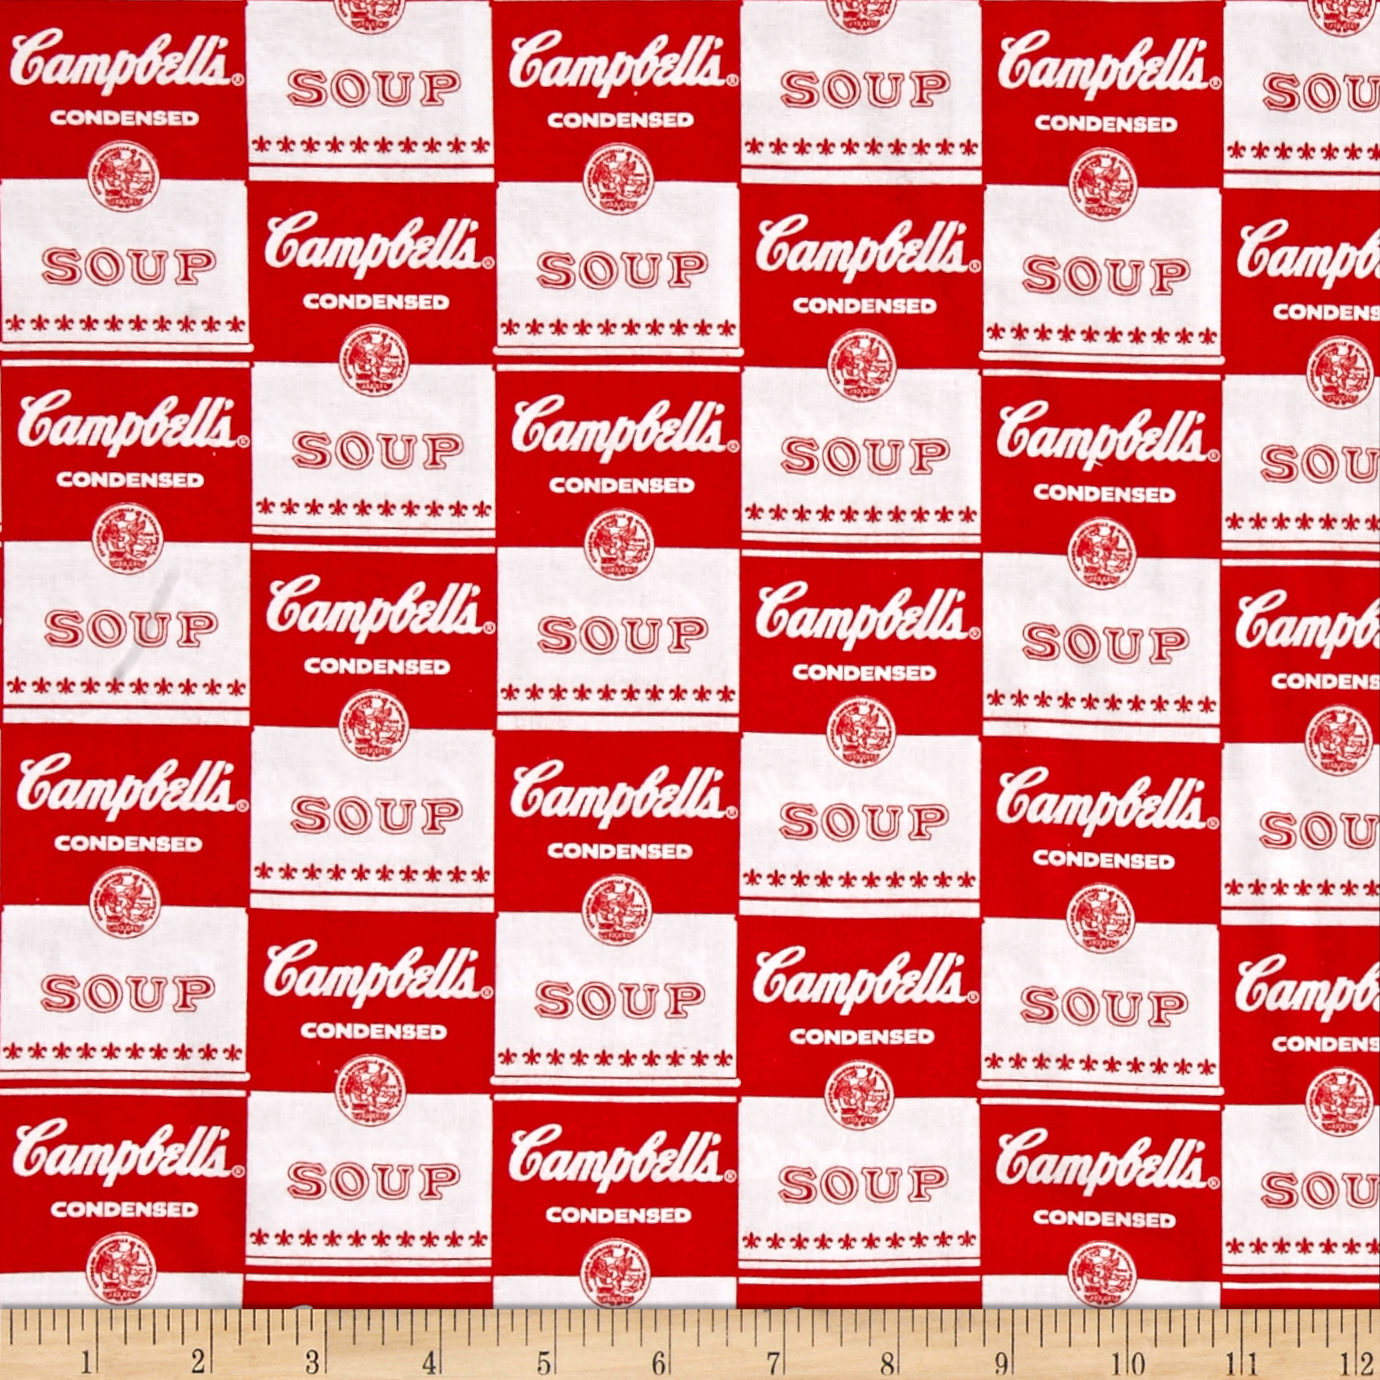 Campbells Soup Contemporary Soup Can Label Red Fabric by E. E. Schenck in USA